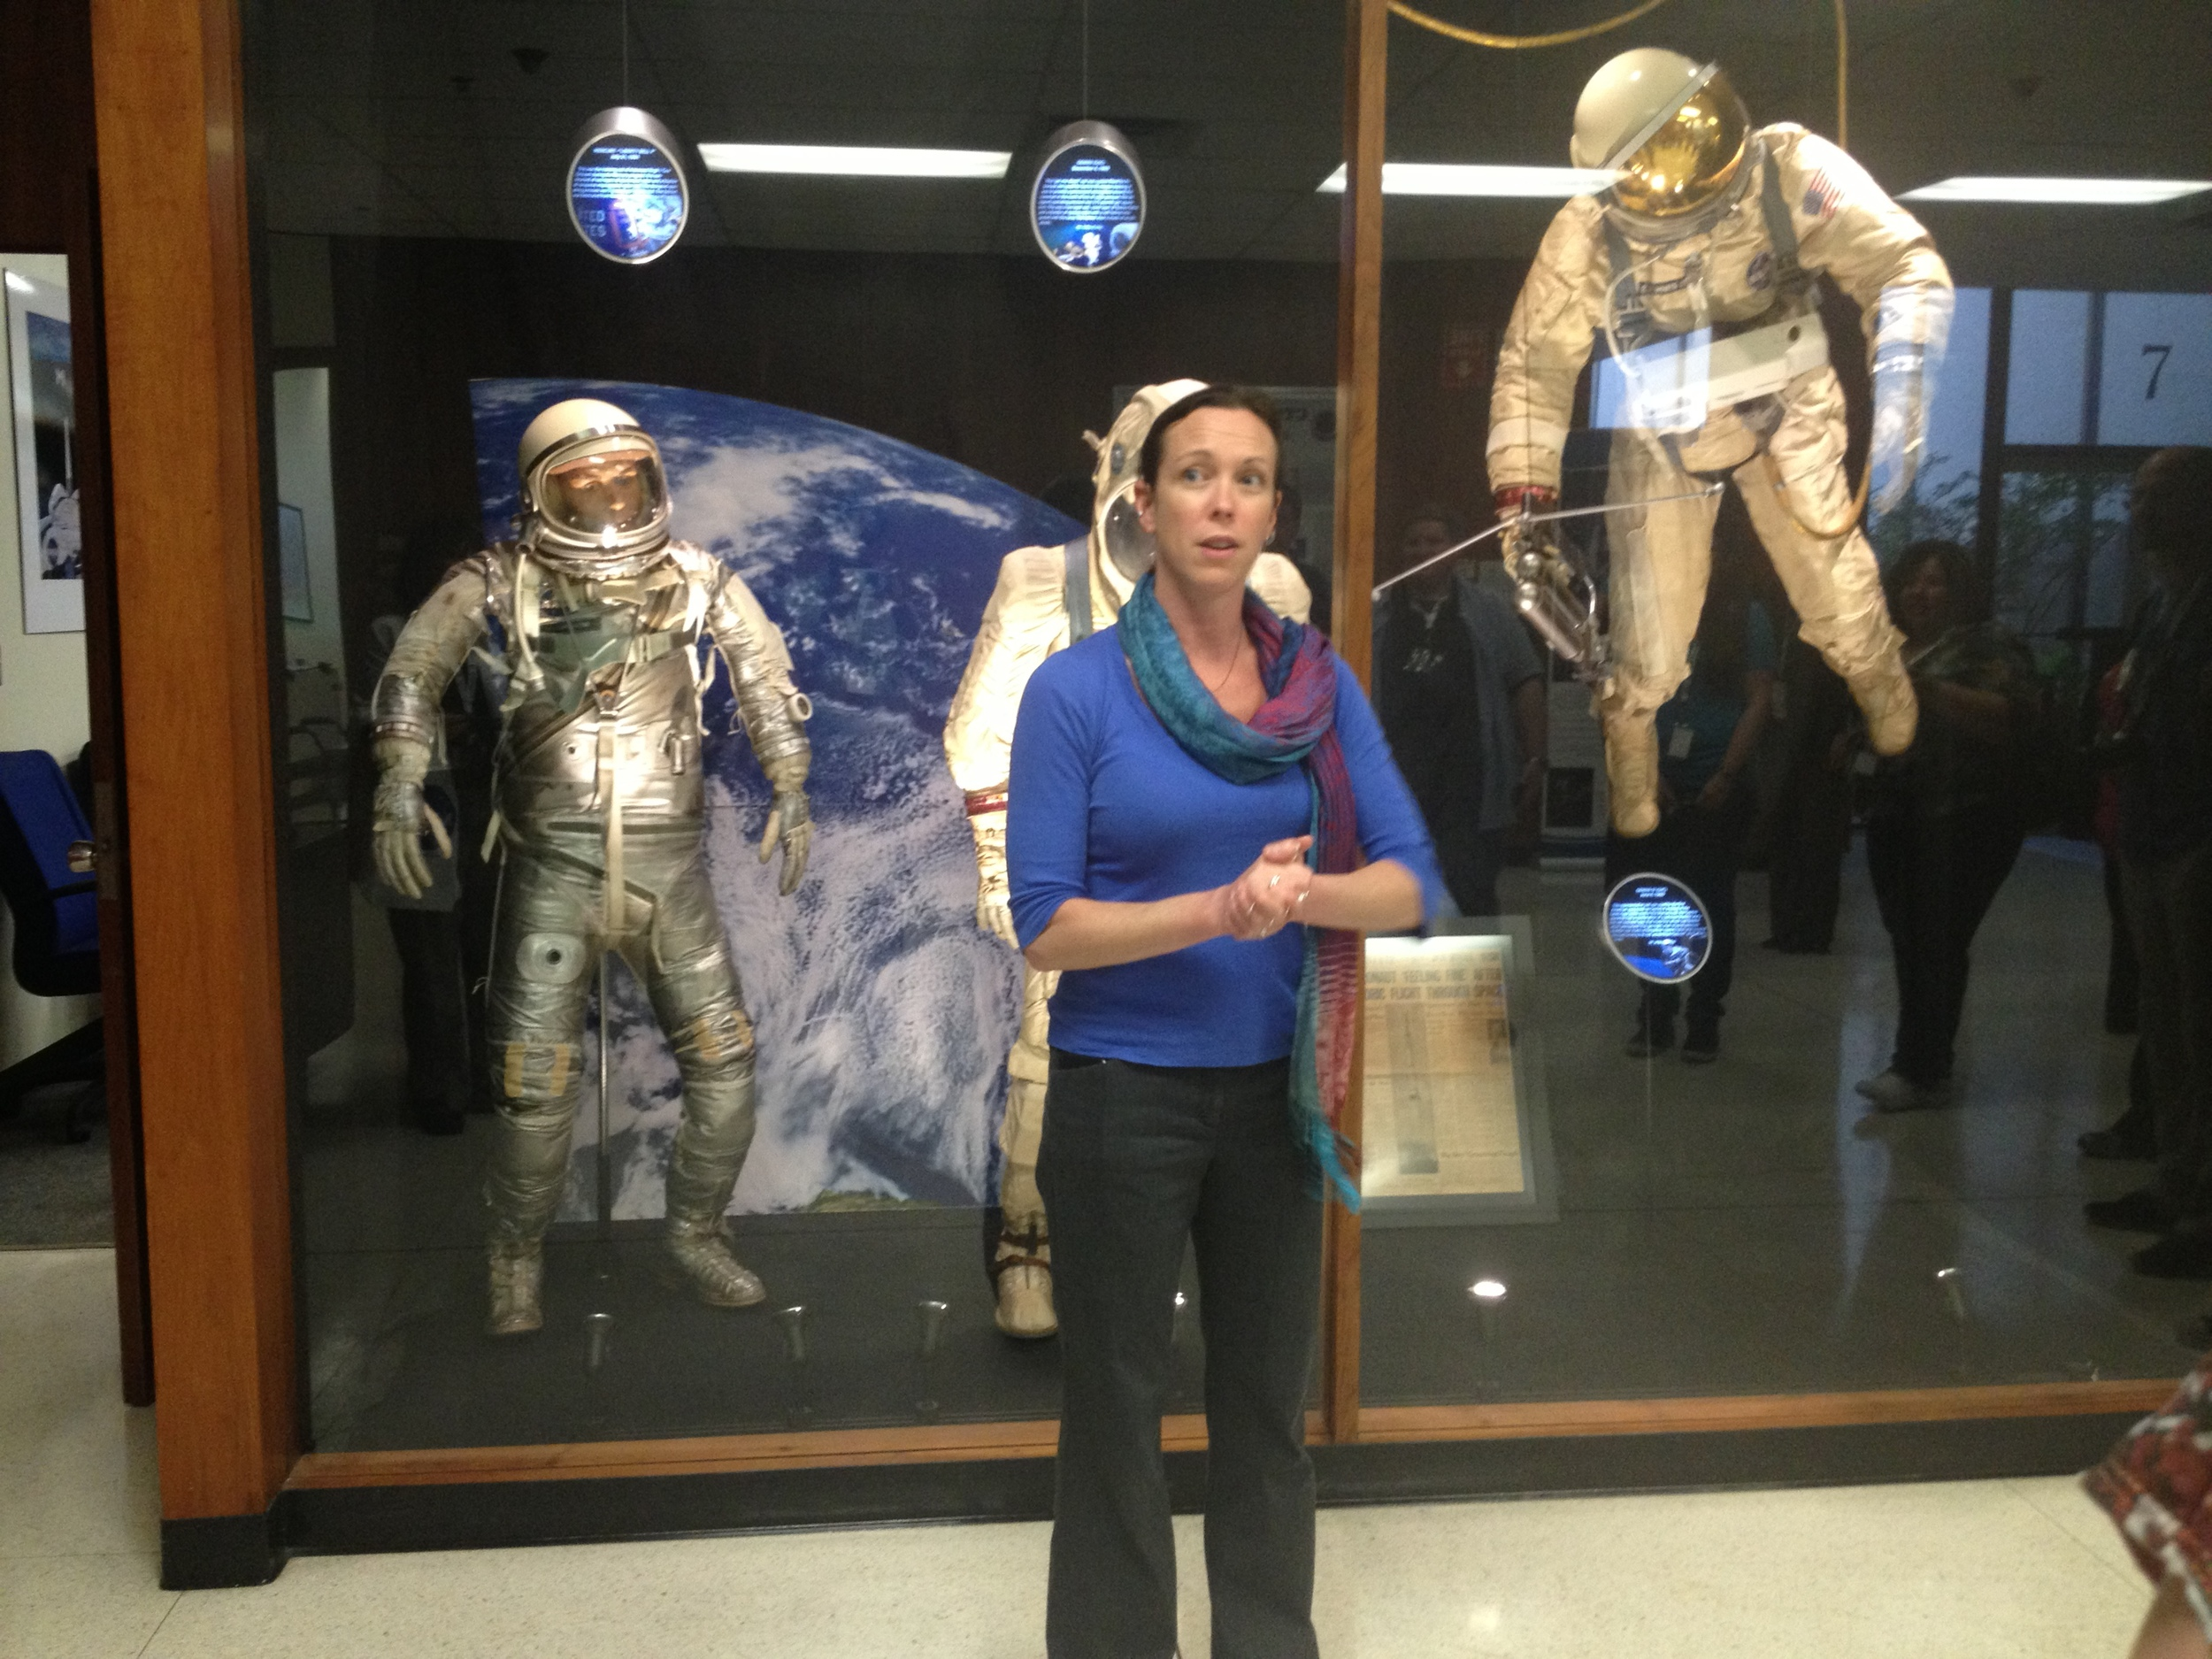 The Crew and Thermal Systems Division (CTSD) shows us the difference between space suits in the past, present, and future.